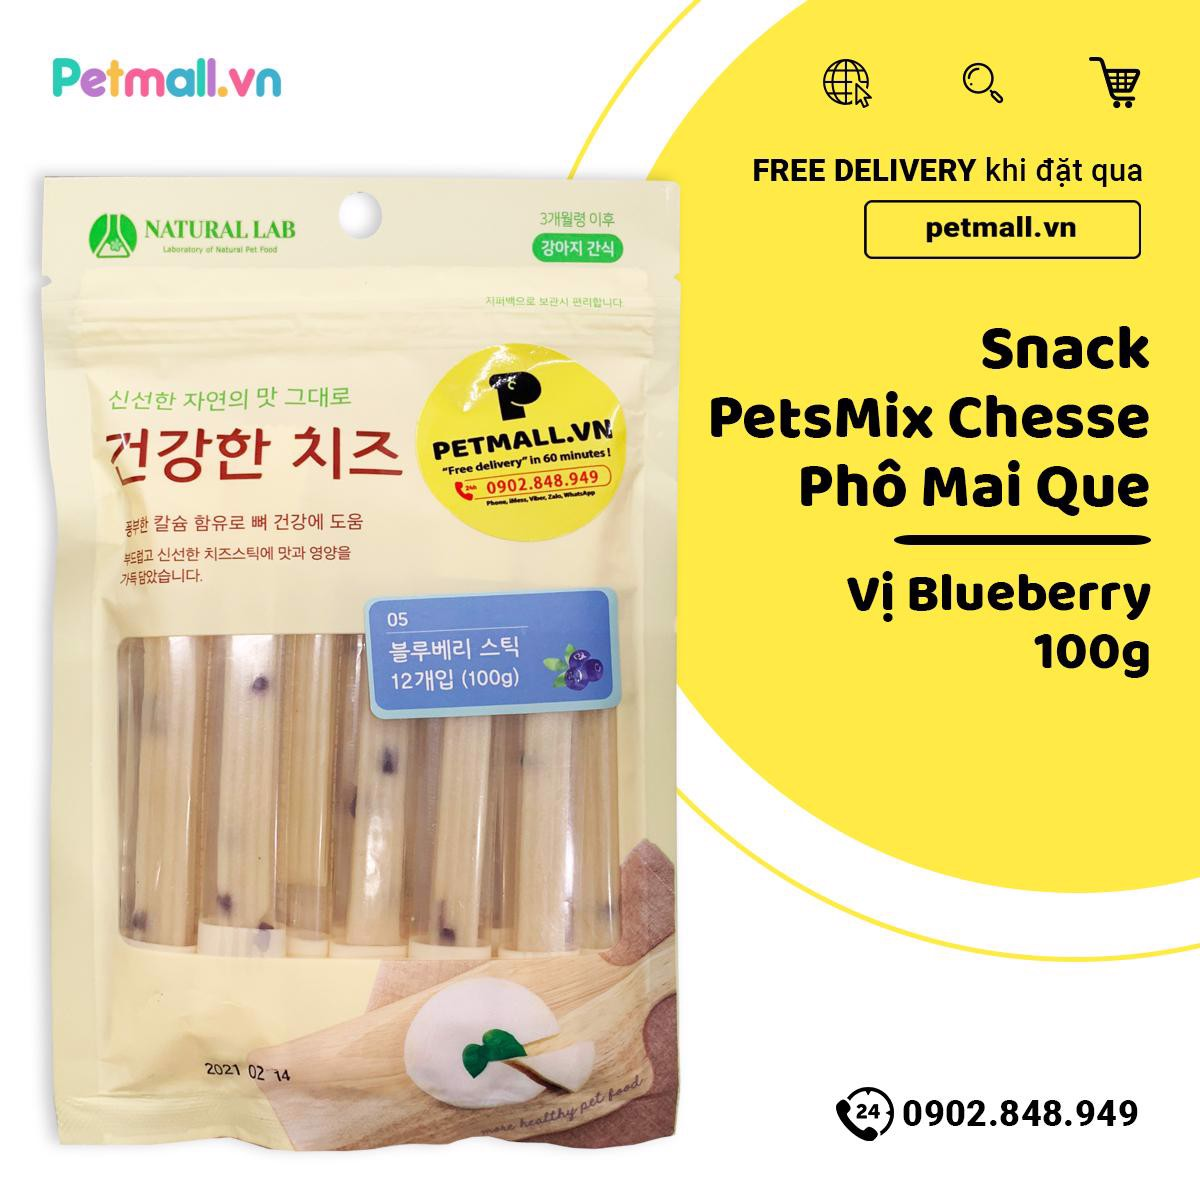 Snack PetsMix Cheese Phô Mai Que 100g - Vị Blueberry